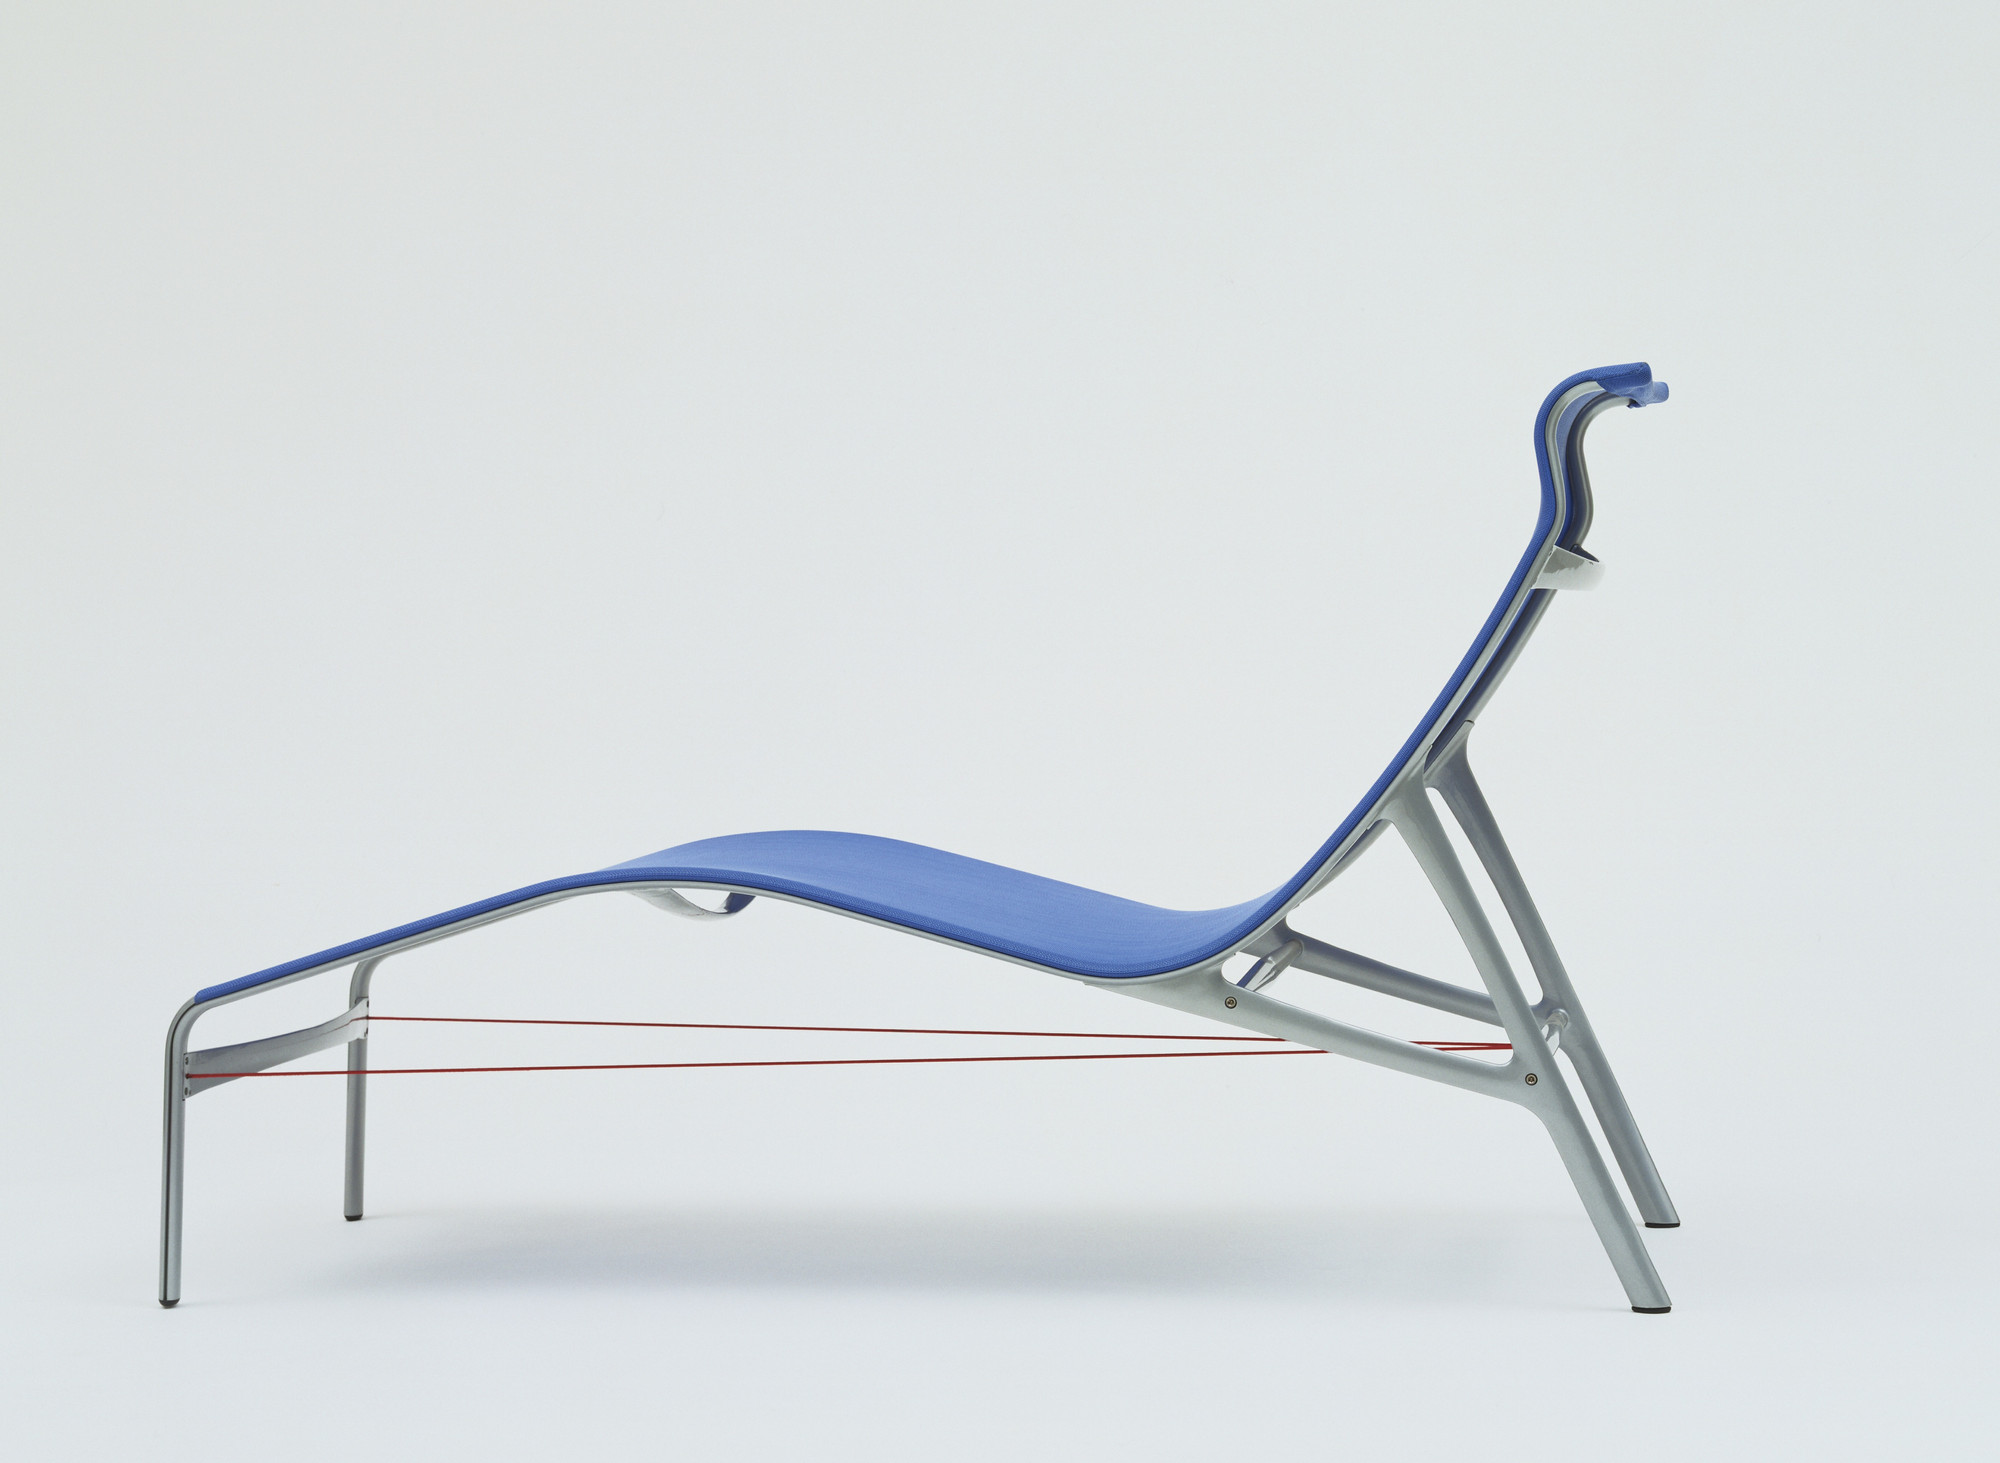 Alberto Meda. Long Frame Chaise Longue. 1994